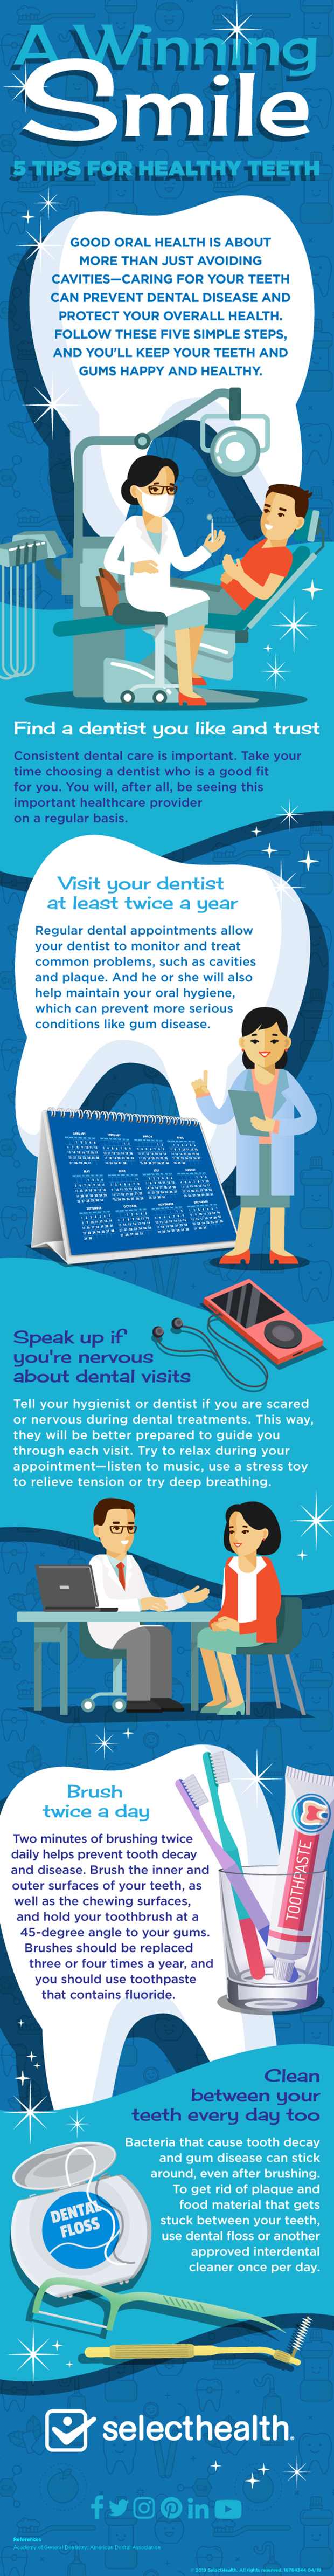 infographic, tips for healthy teeth